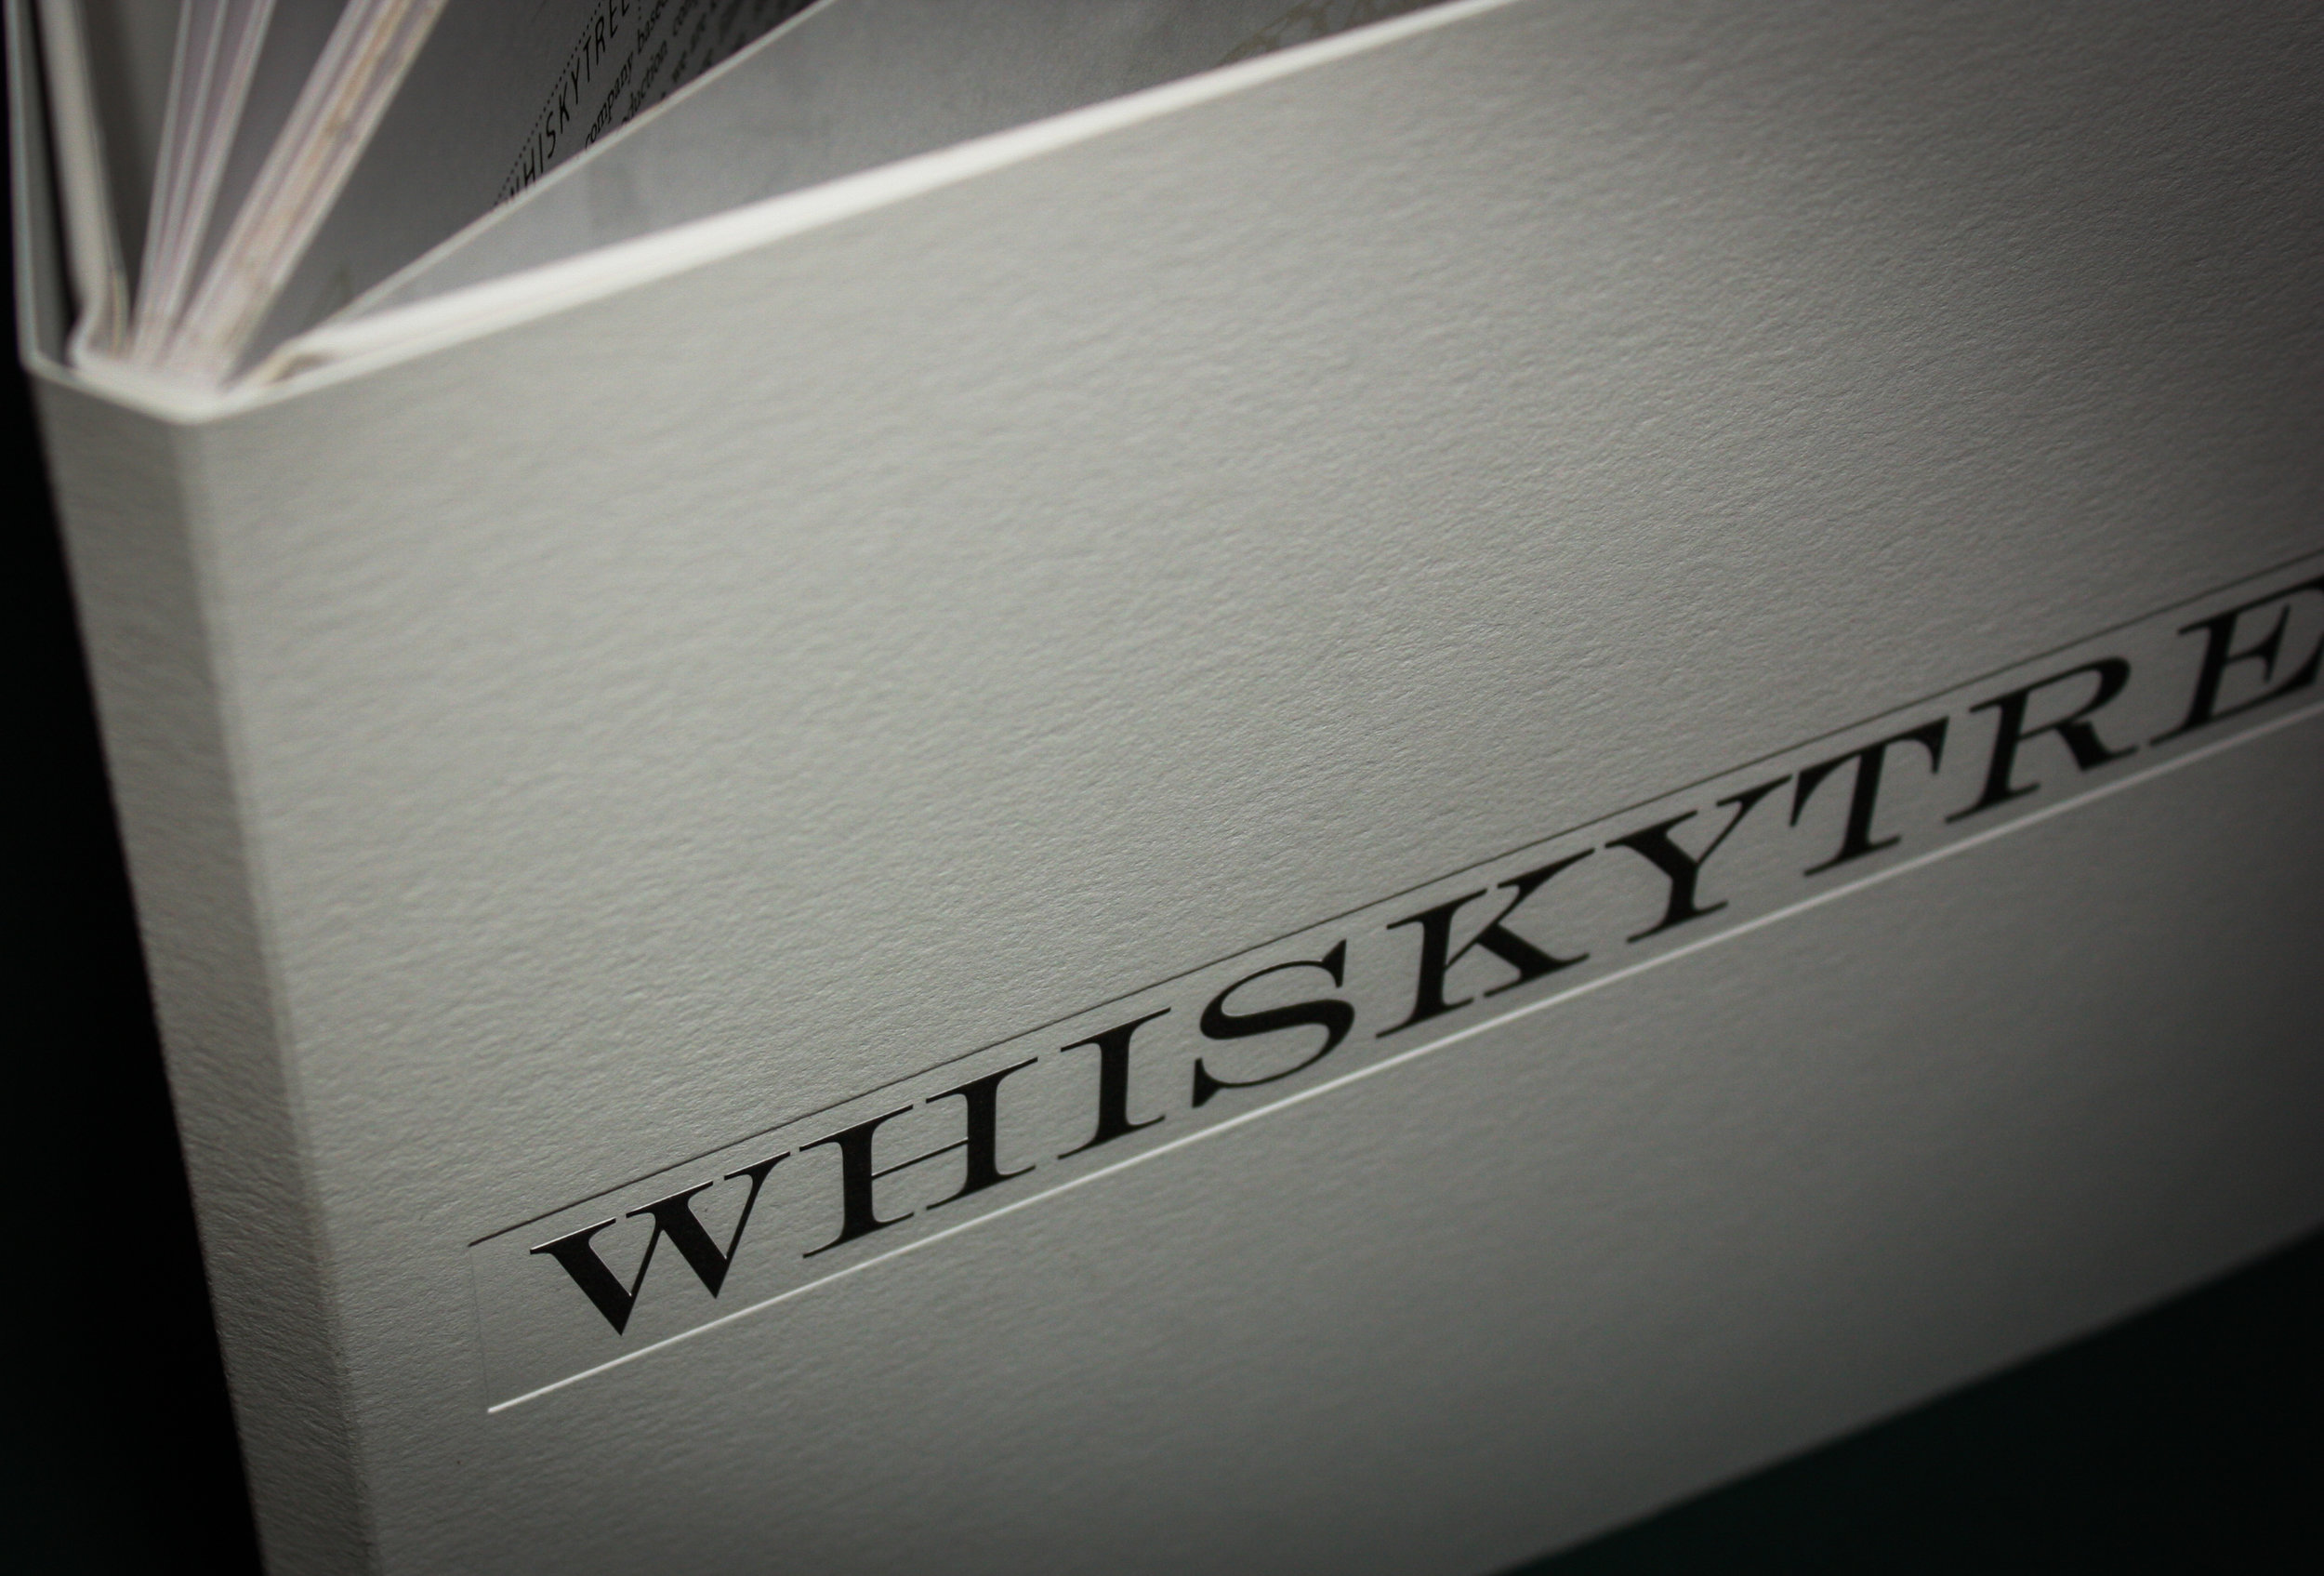 Whiskytree Dust Jacket Client:  Whiskytree  Dust jacket made with 100-pound Cranes Letra, black offset print, and registered deboss.